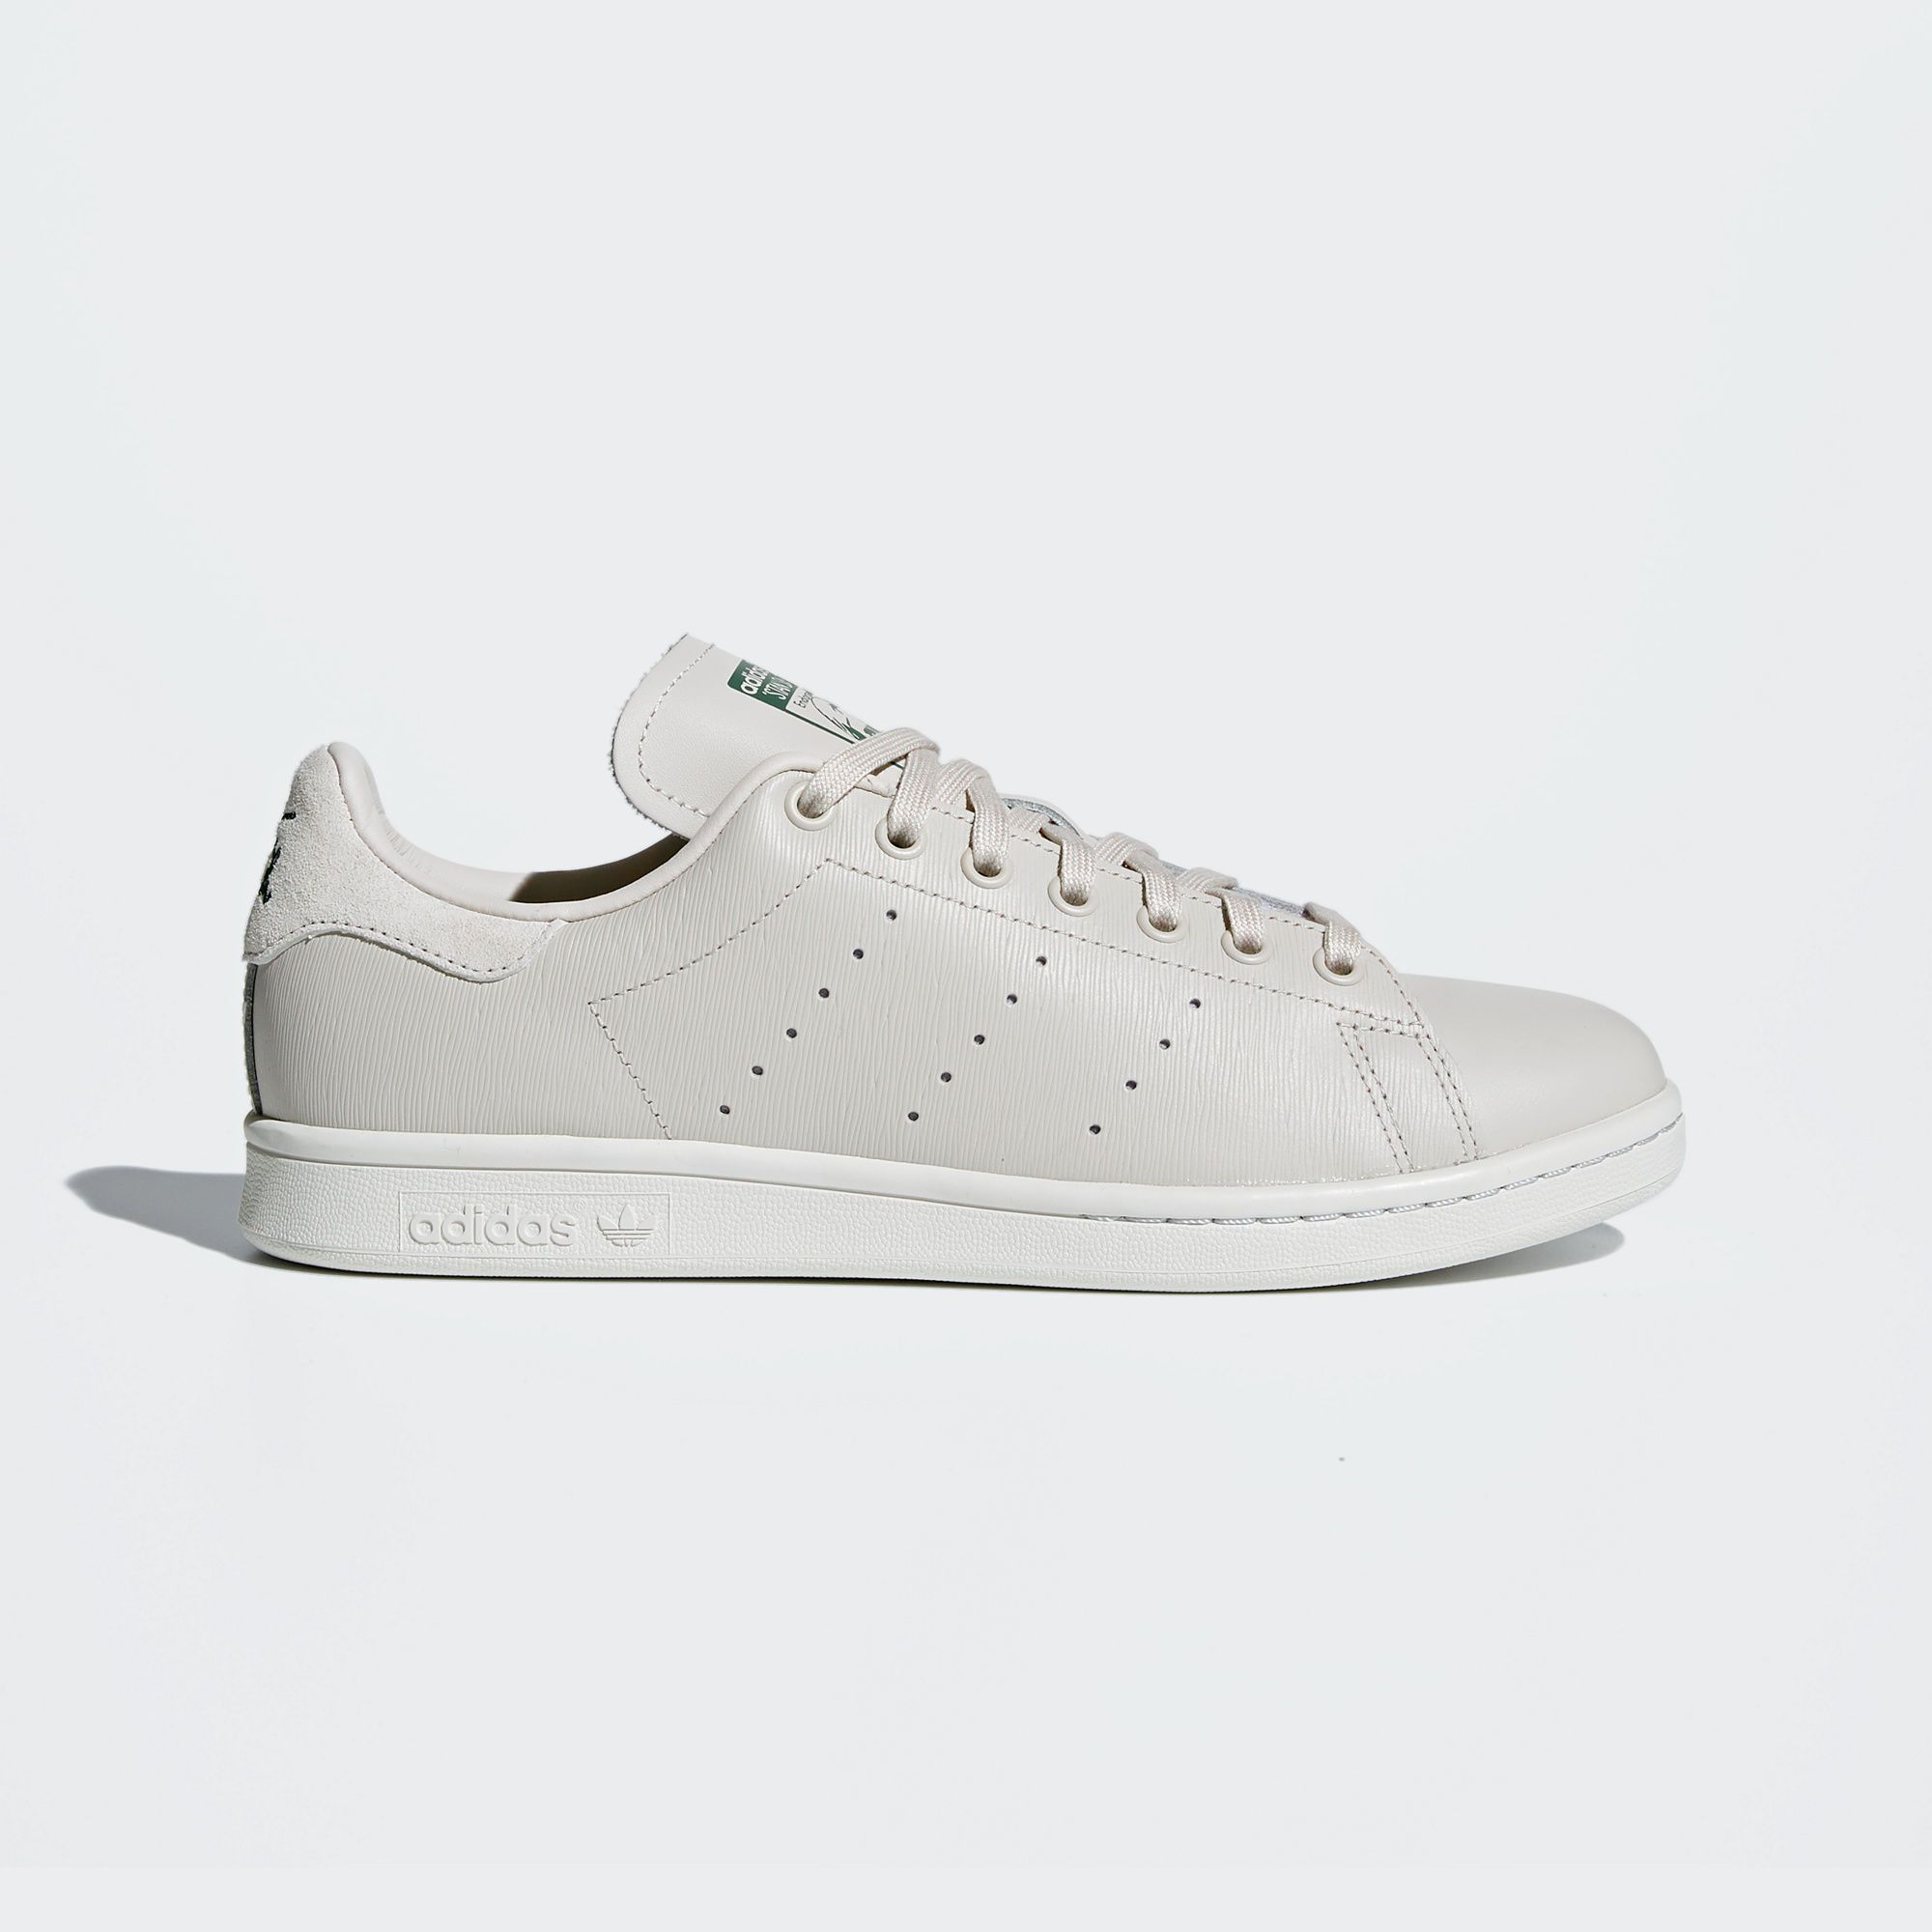 02cdf7c285a adidas - Sapatos Stan Smith